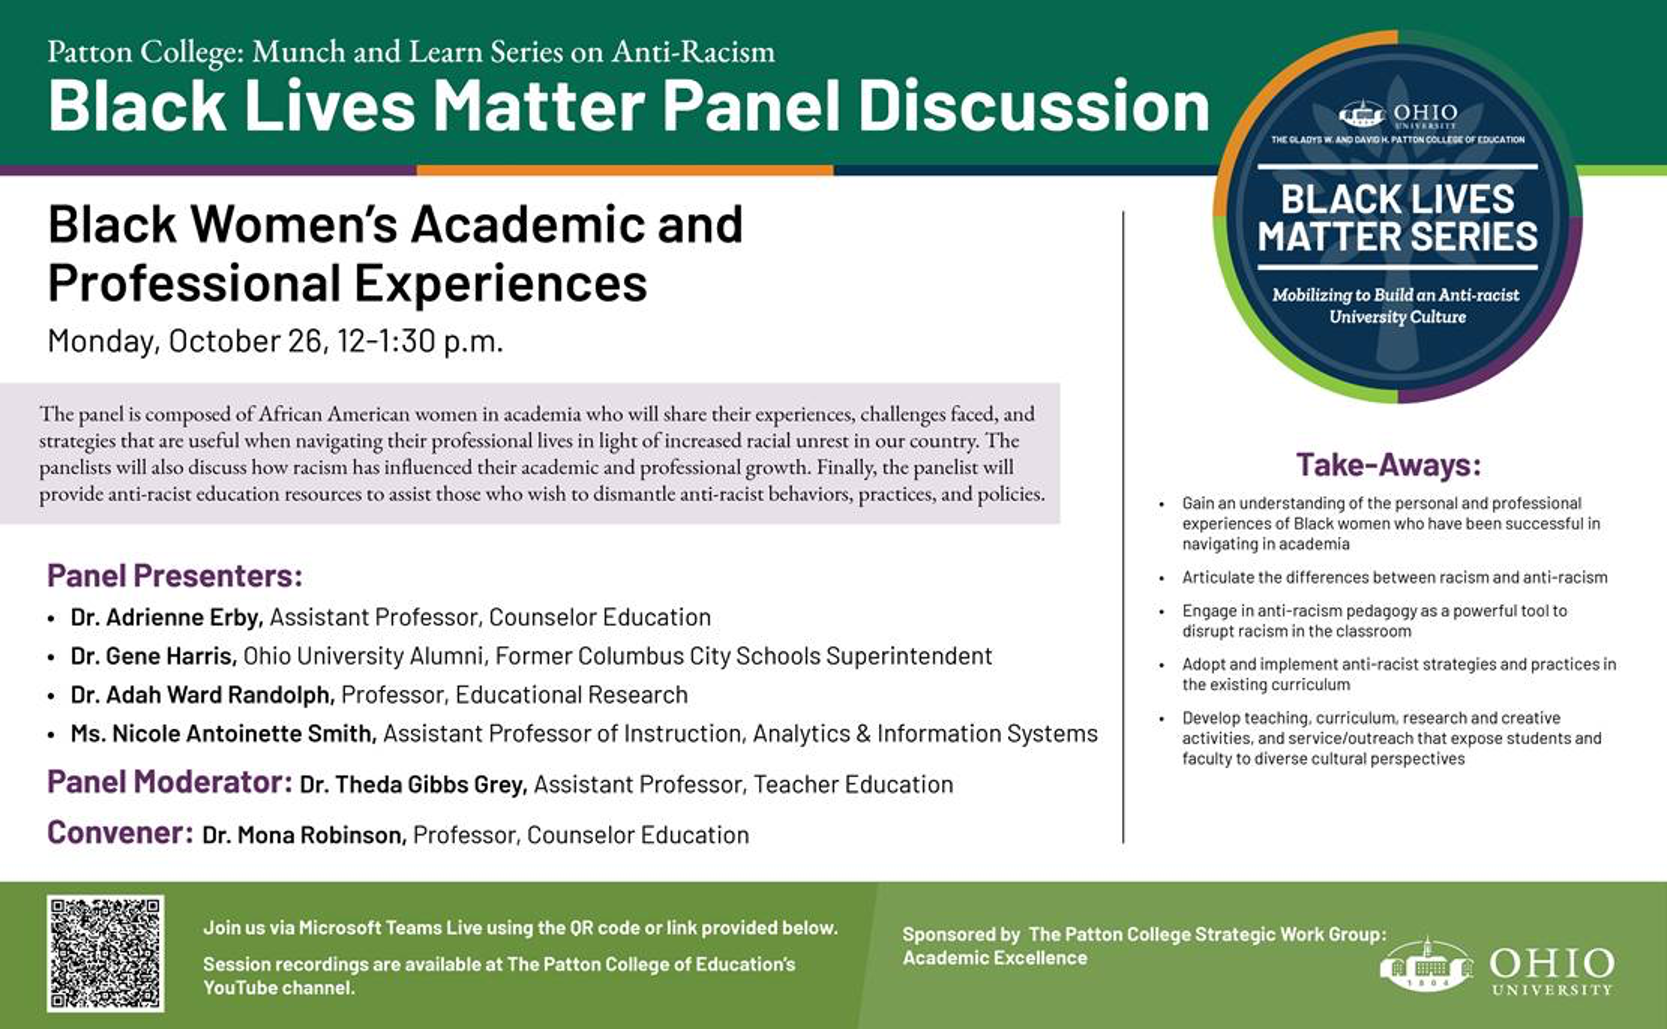 Black Women's Academic and Professional Experiences event flyer